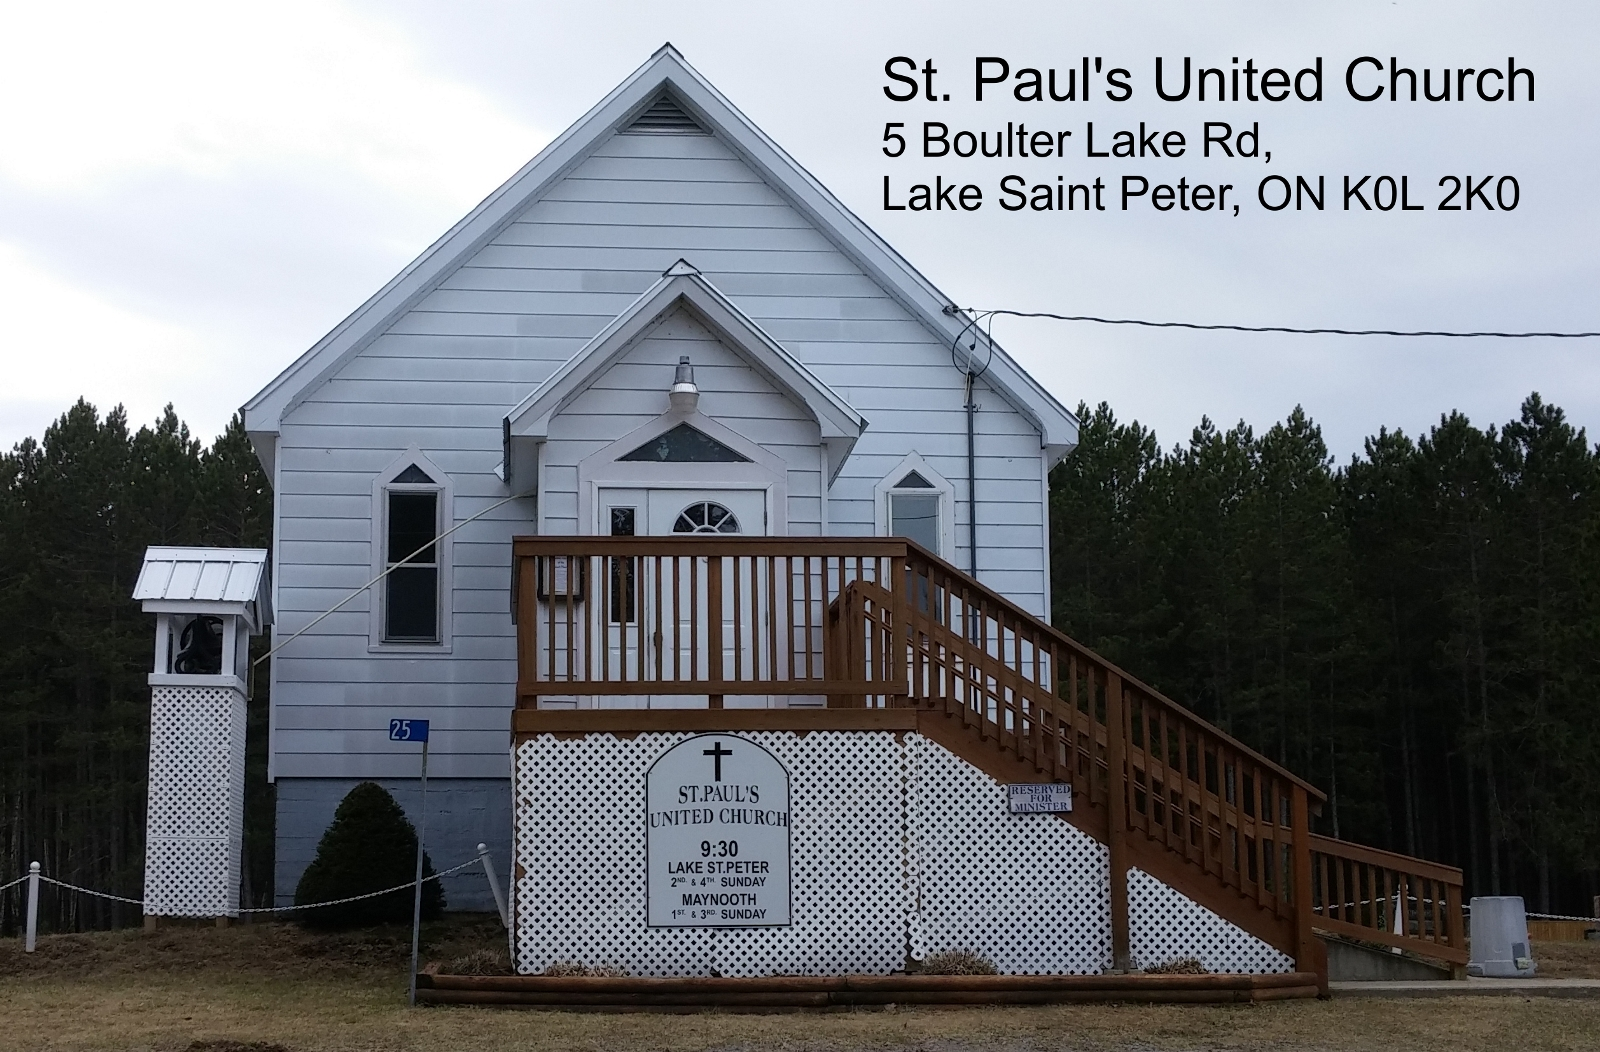 Lake St Peter, Maynooth Sunday Service at Lake St Peter @ St. Paul's United Church | Lake Saint Peter | Ontario | Canada